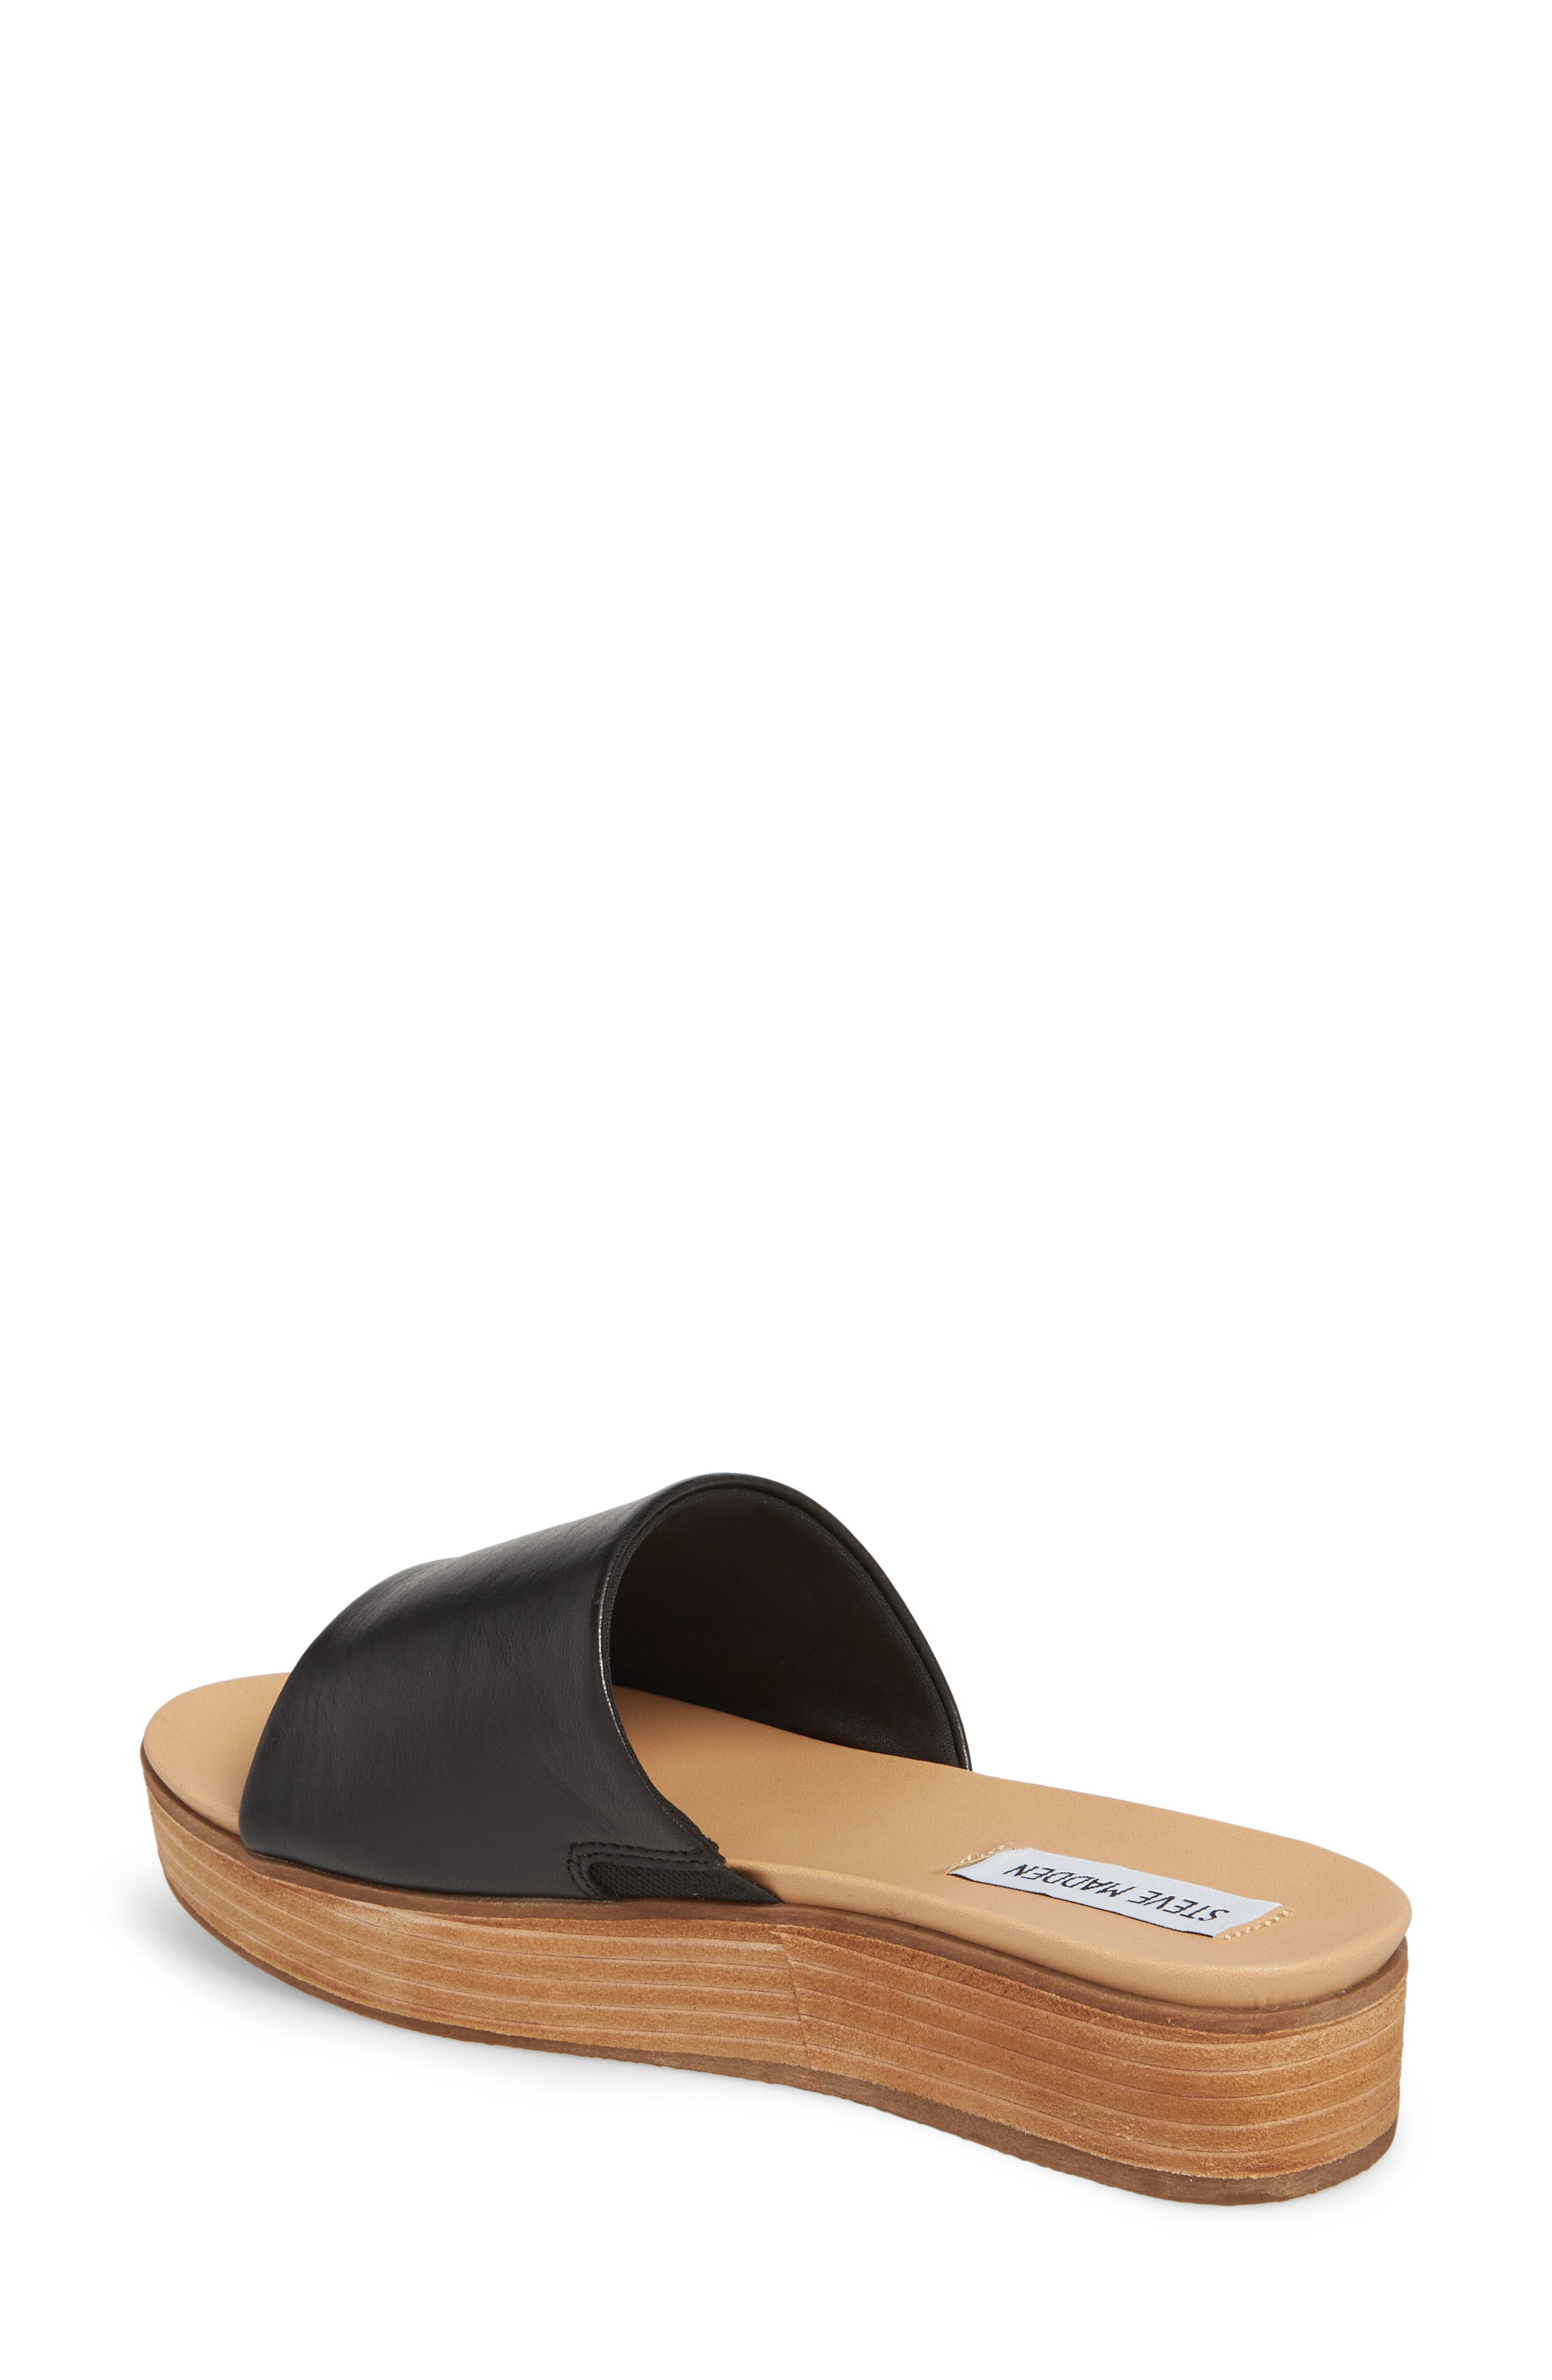 Genca Slide Sandal,                             Alternate thumbnail 2, color,                             001